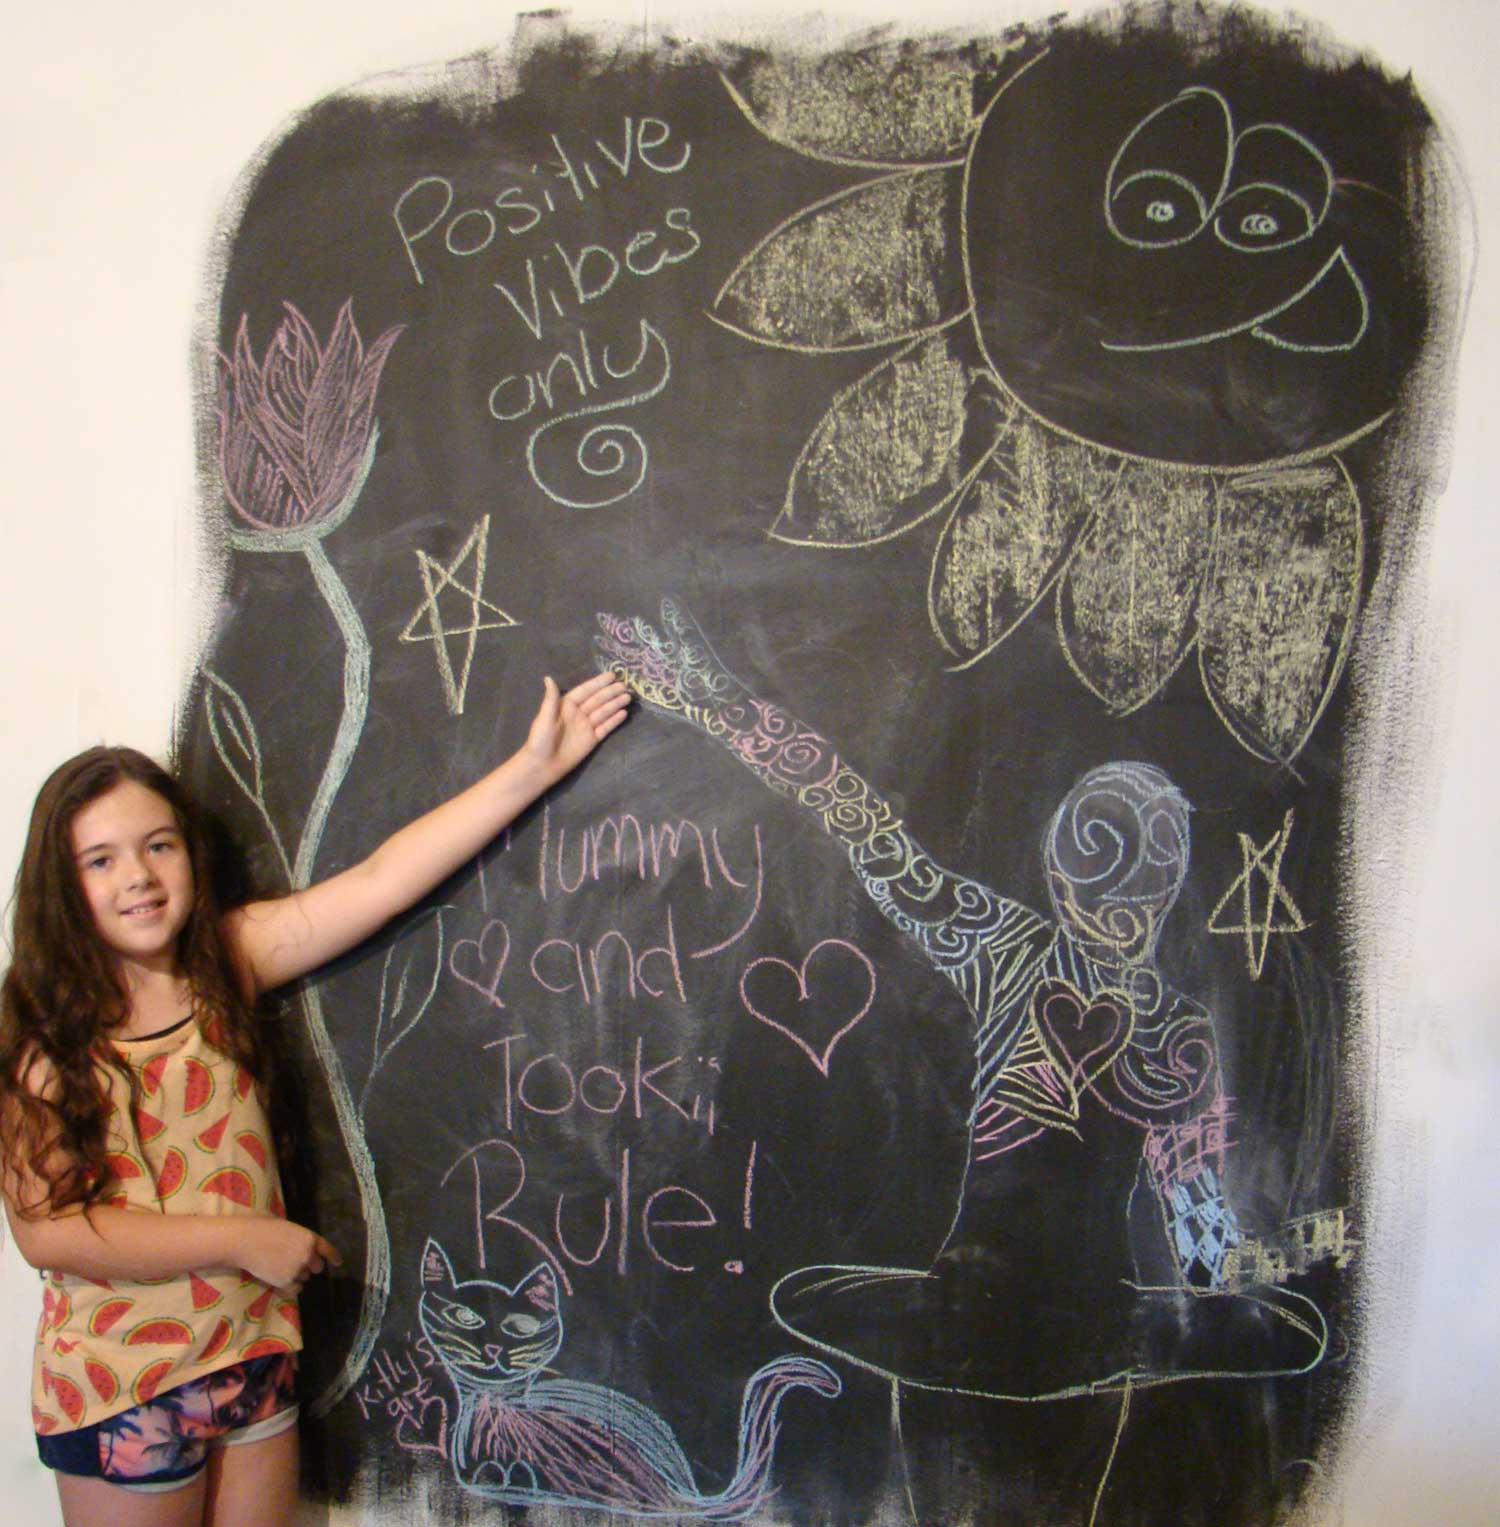 Tookii things to do with kids blackboard one of the activities for kids